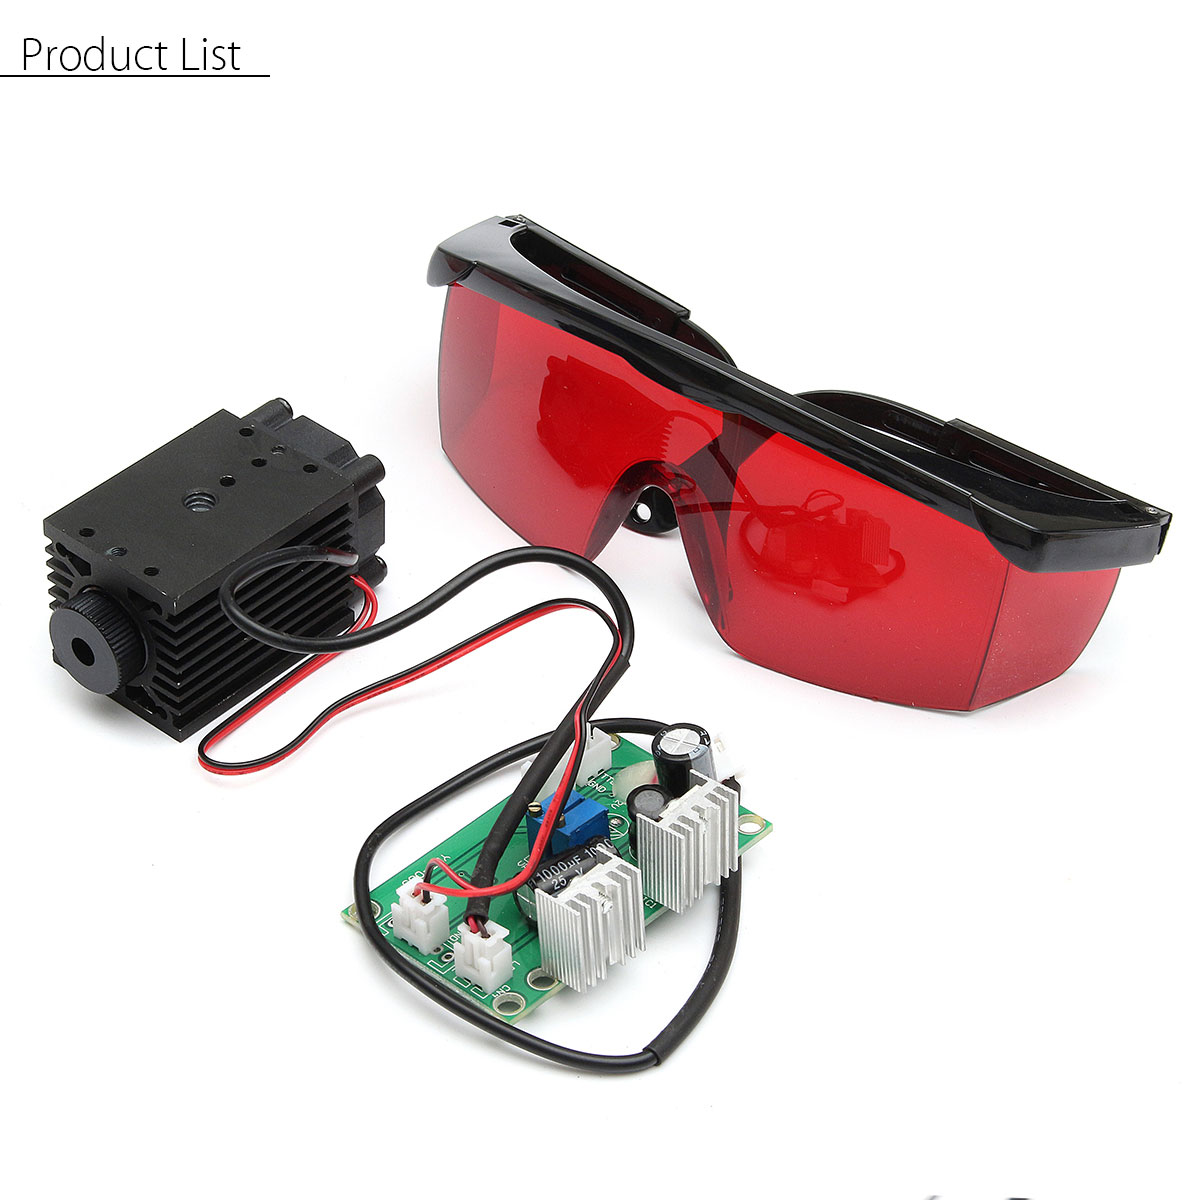 Focusable High Power 2.5W 450nm Blue Laser Module TTL 12V Carving free Goggles 30